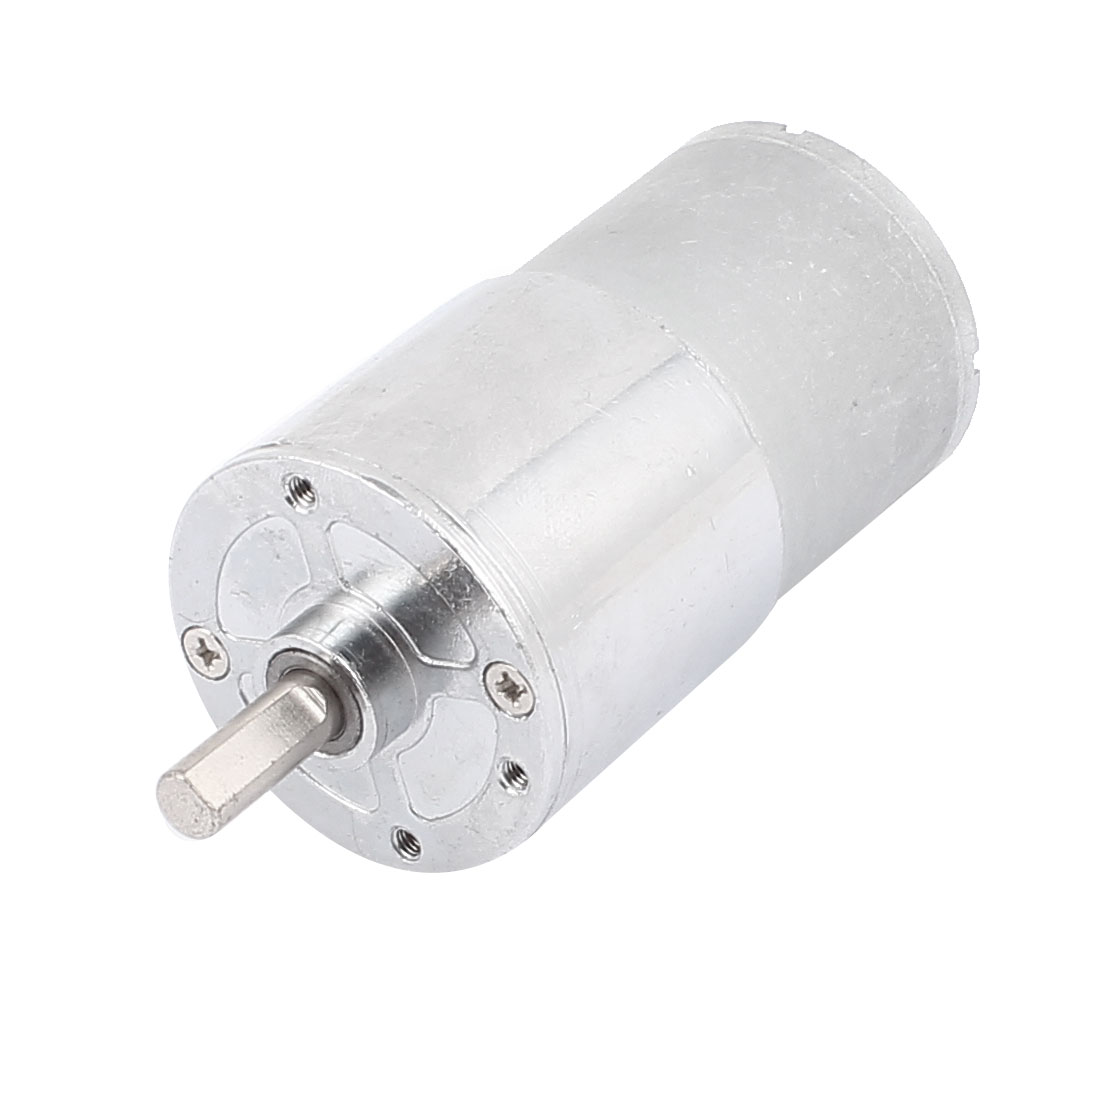 6mm Dia Shaft Soldering Pin Cylinder Gear Box Electric DC Geared Motor 12V 5RPM Speed